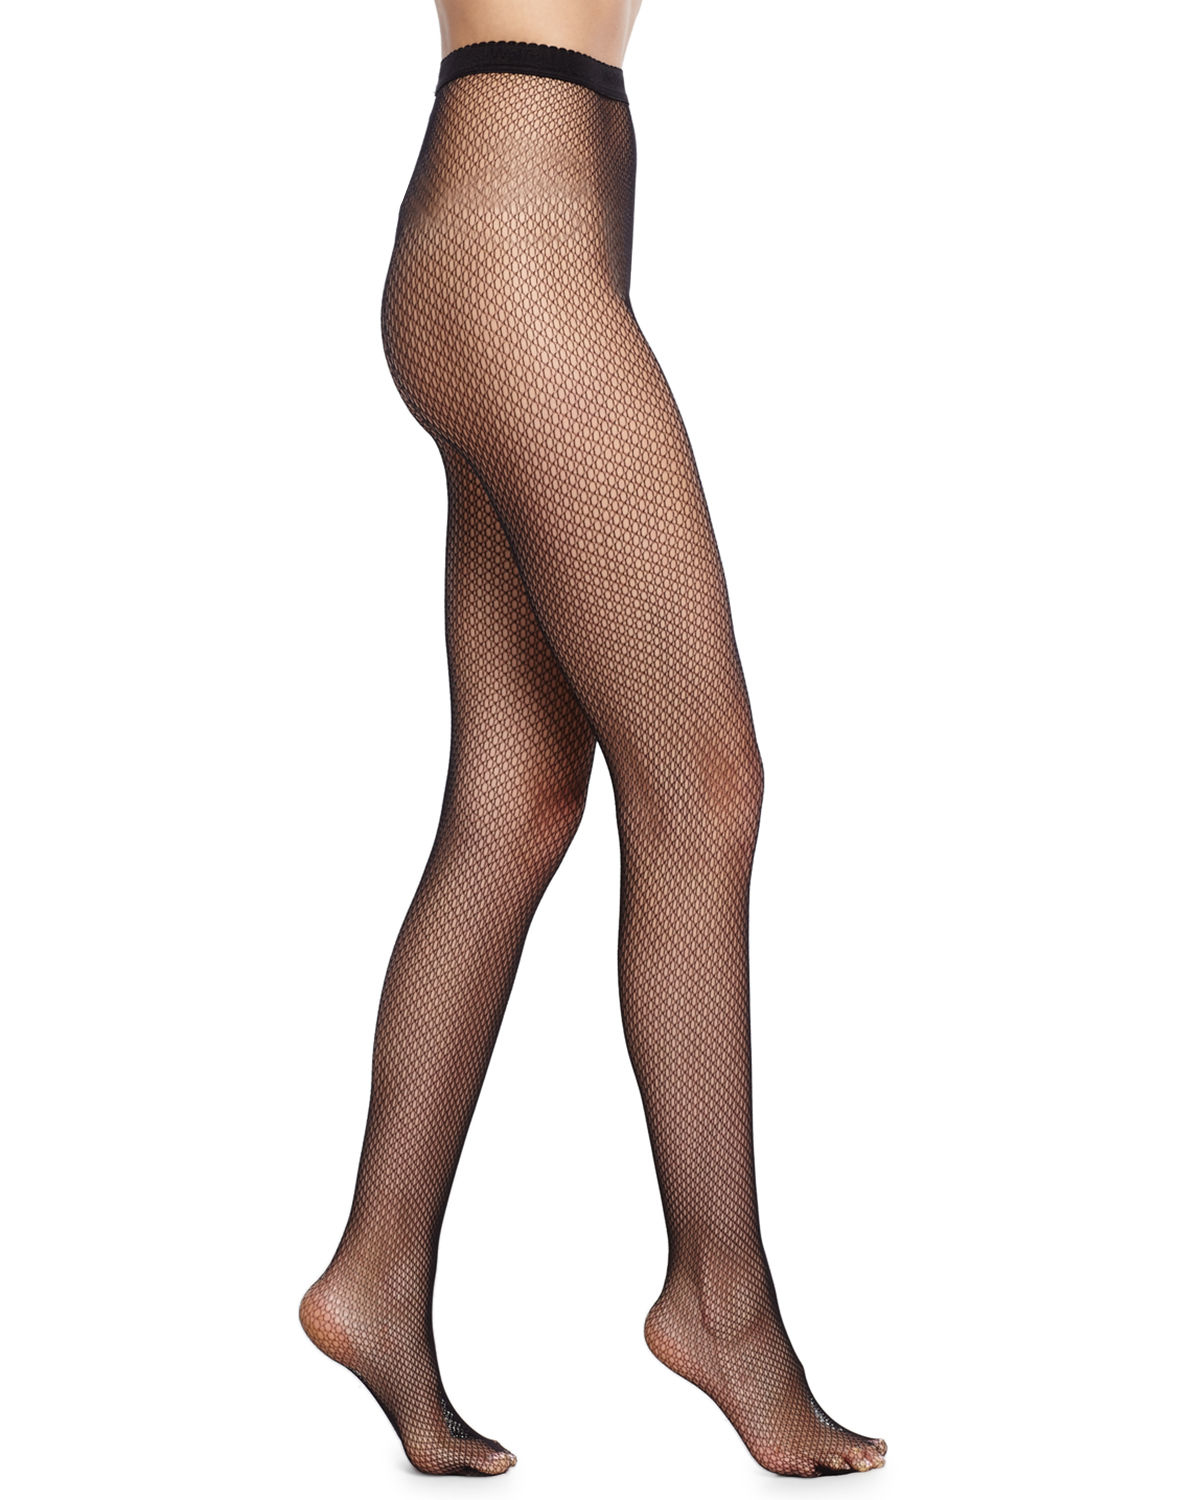 Share wolford mens pantyhose remarkable